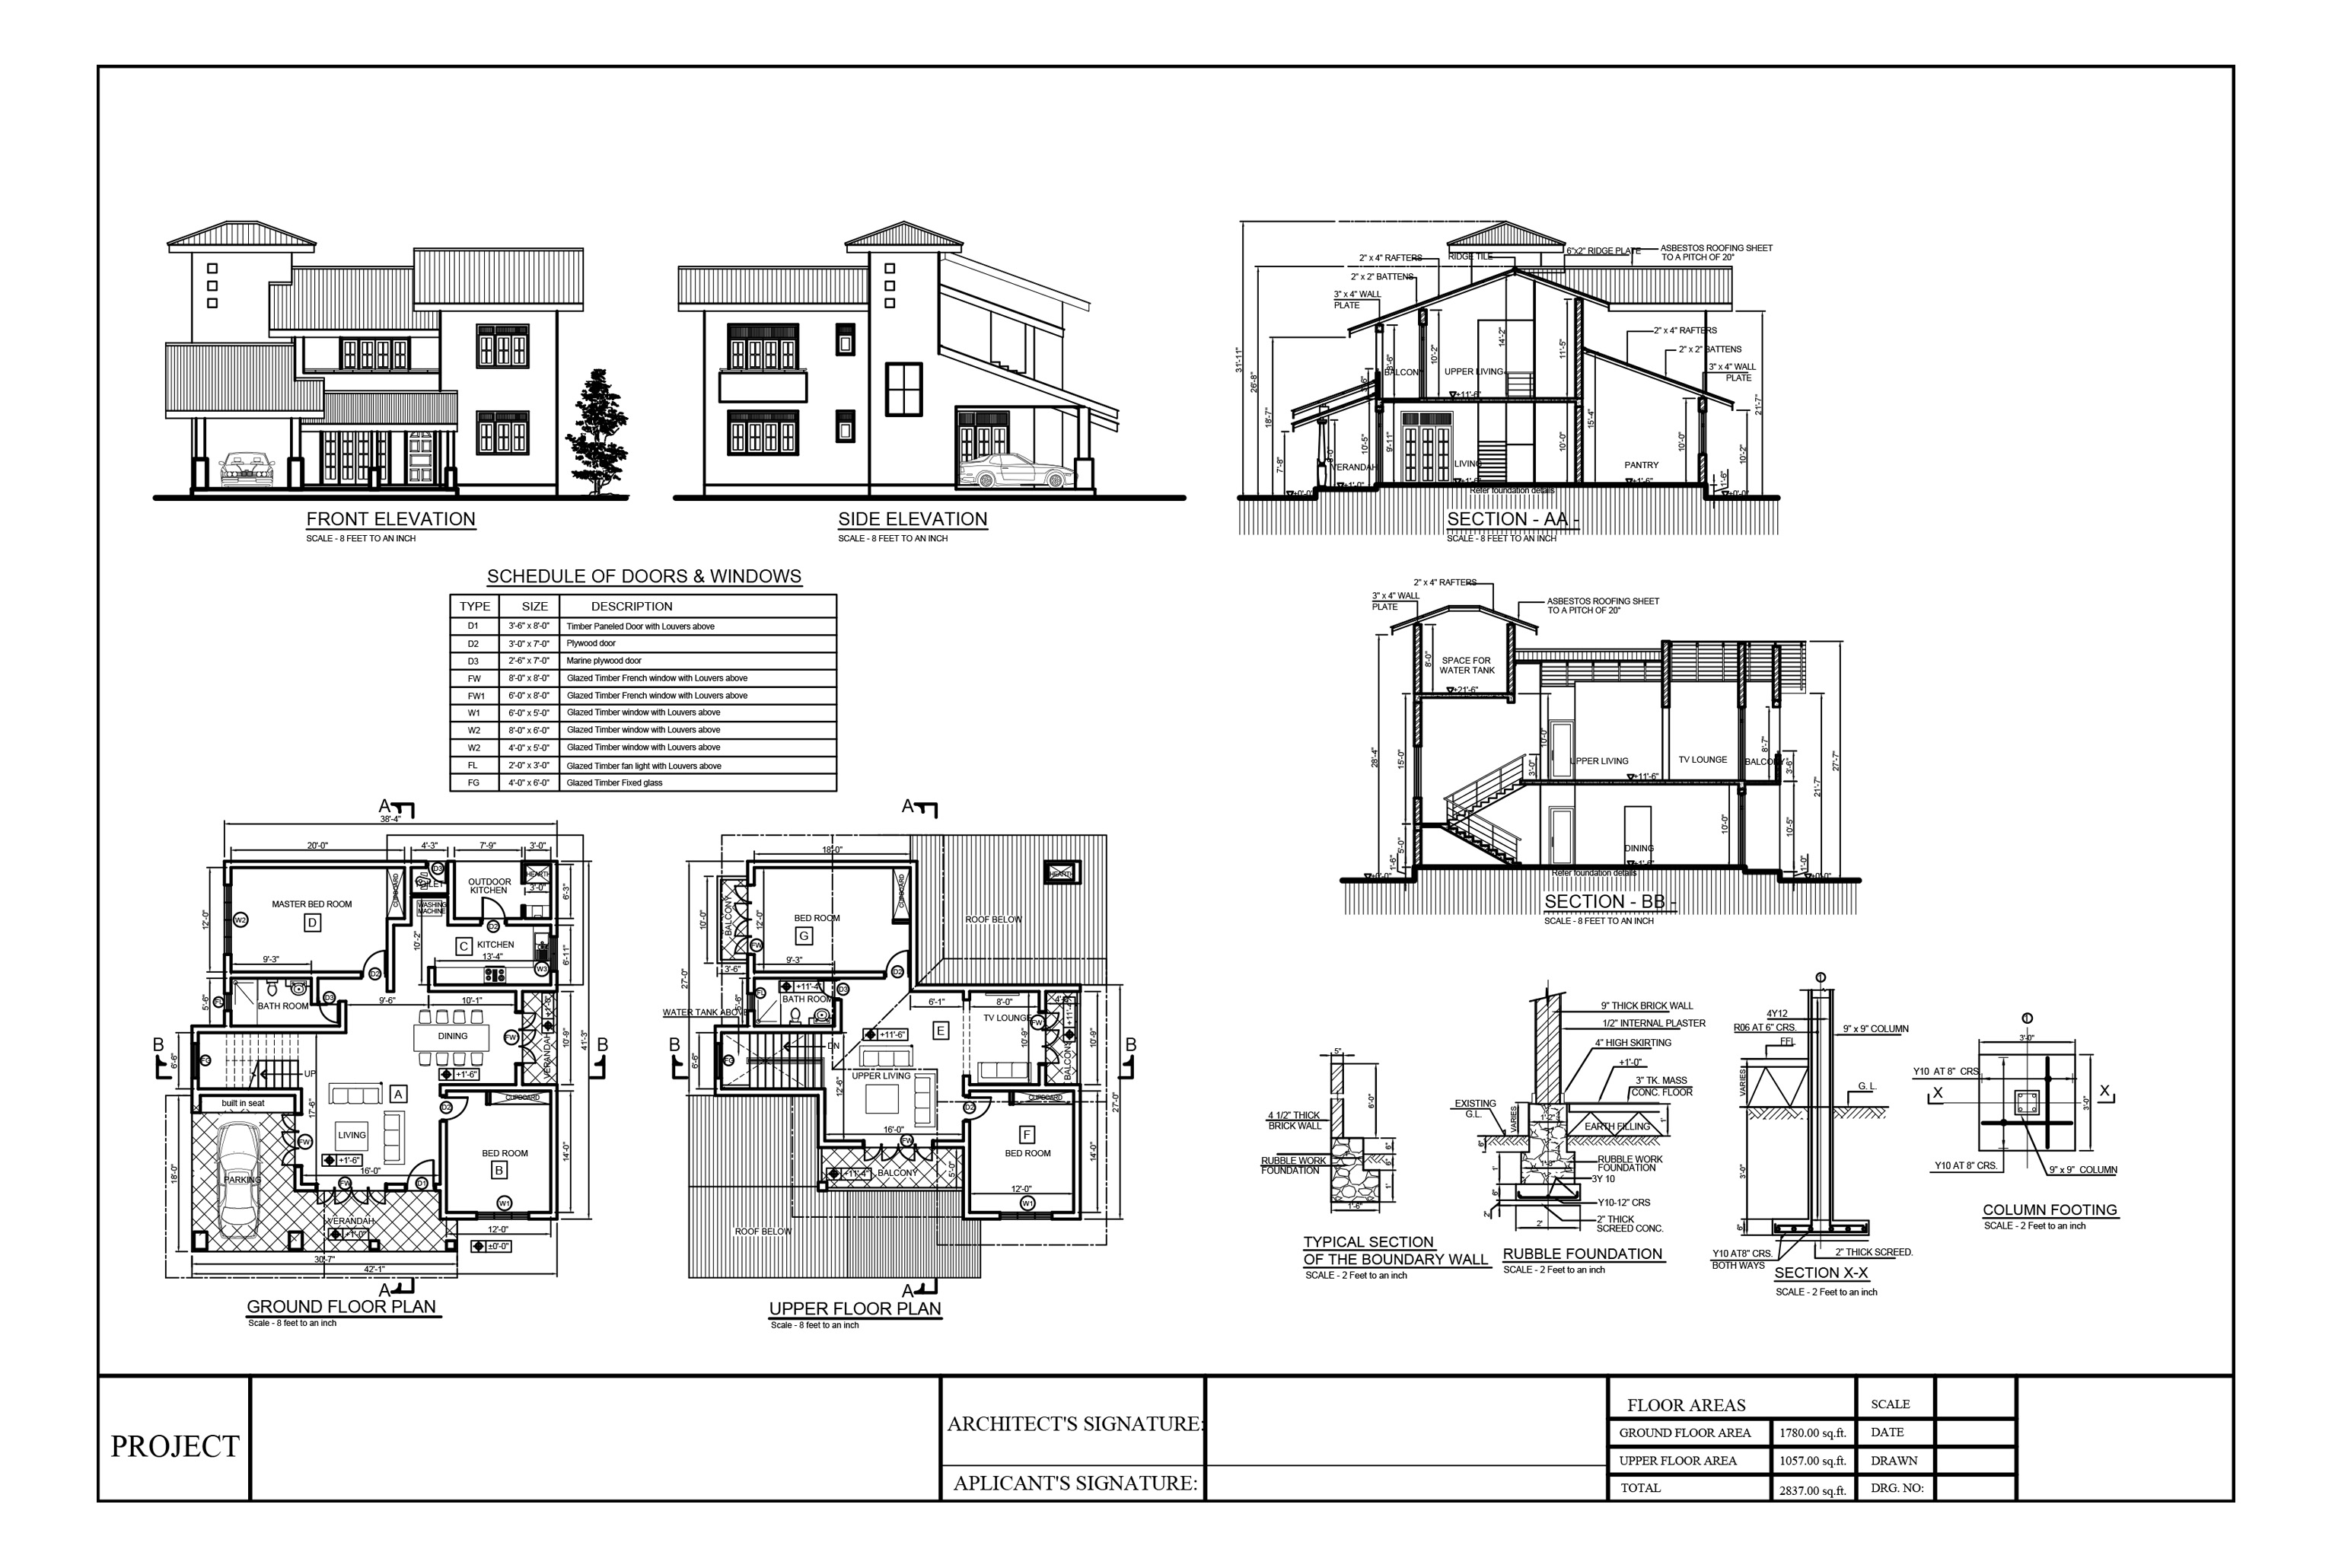 Elevation Floor Plan House : House plans sections elevations pdf